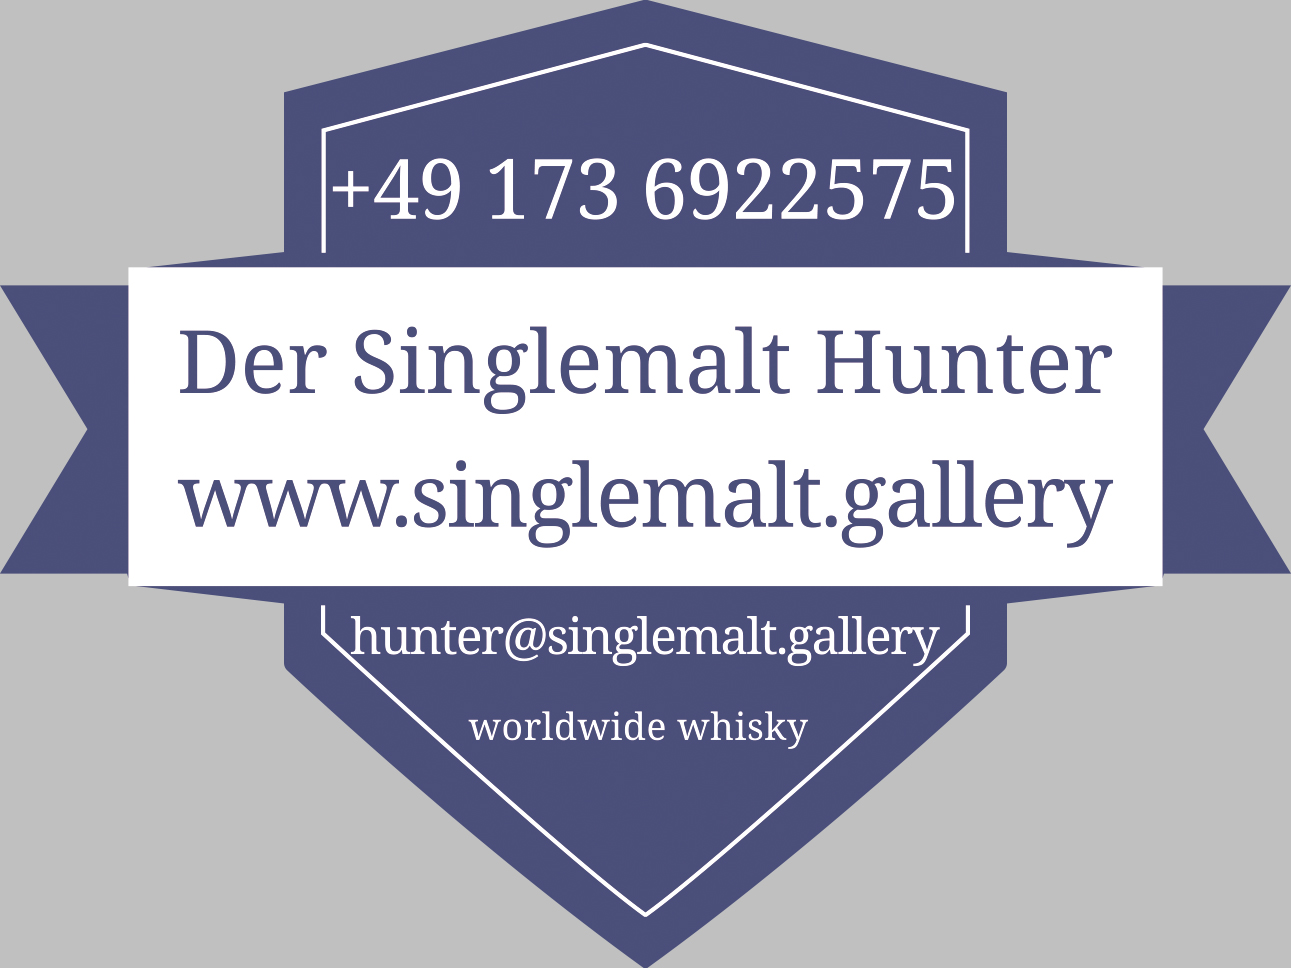 Der Singlemalt Hunter